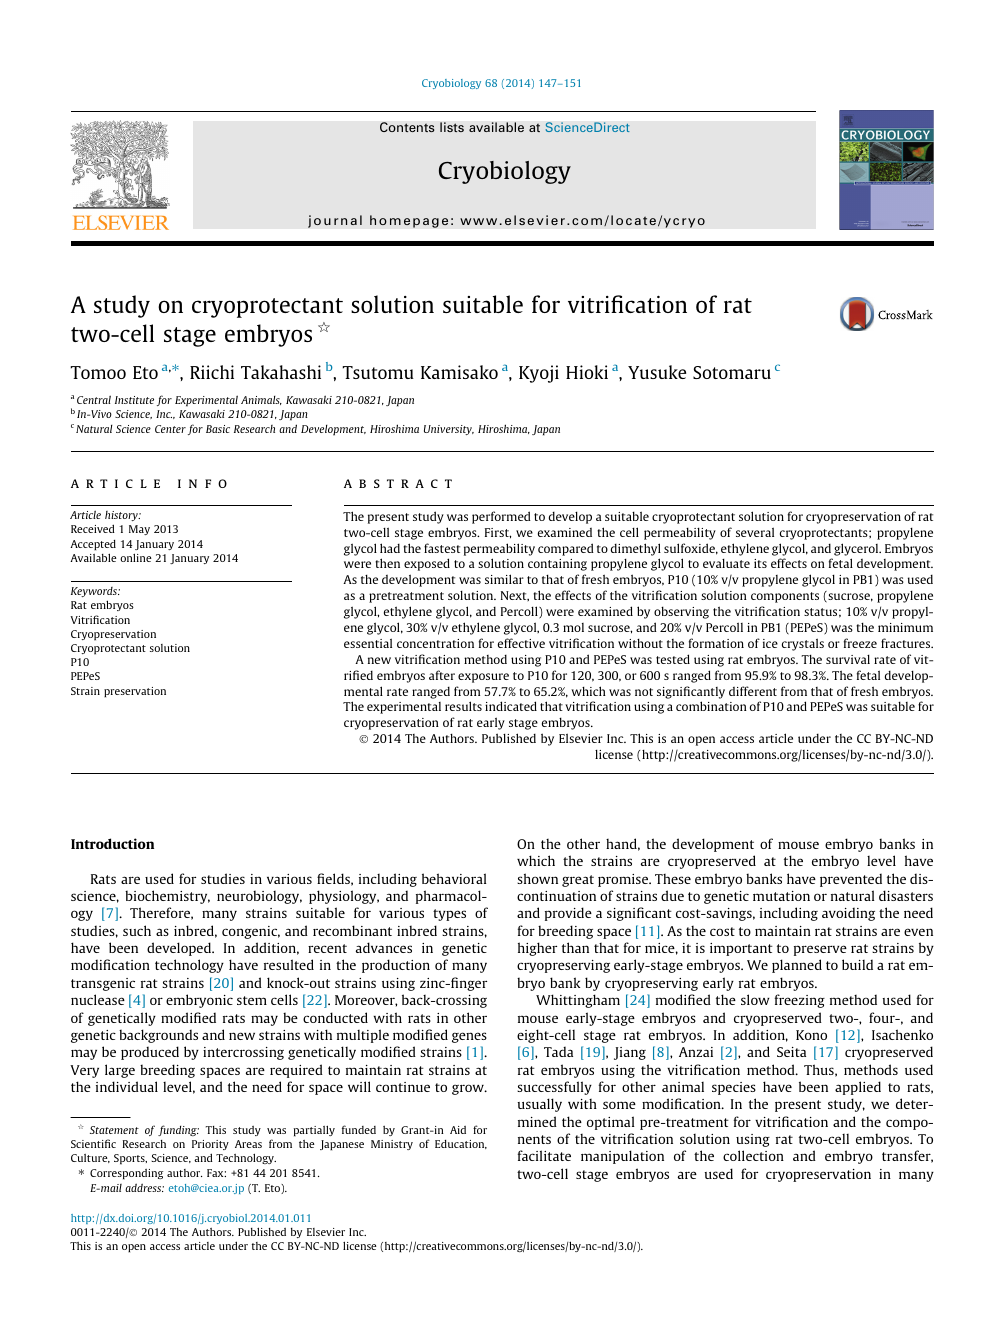 A study on cryoprotectant solution suitable for vitrification of rat